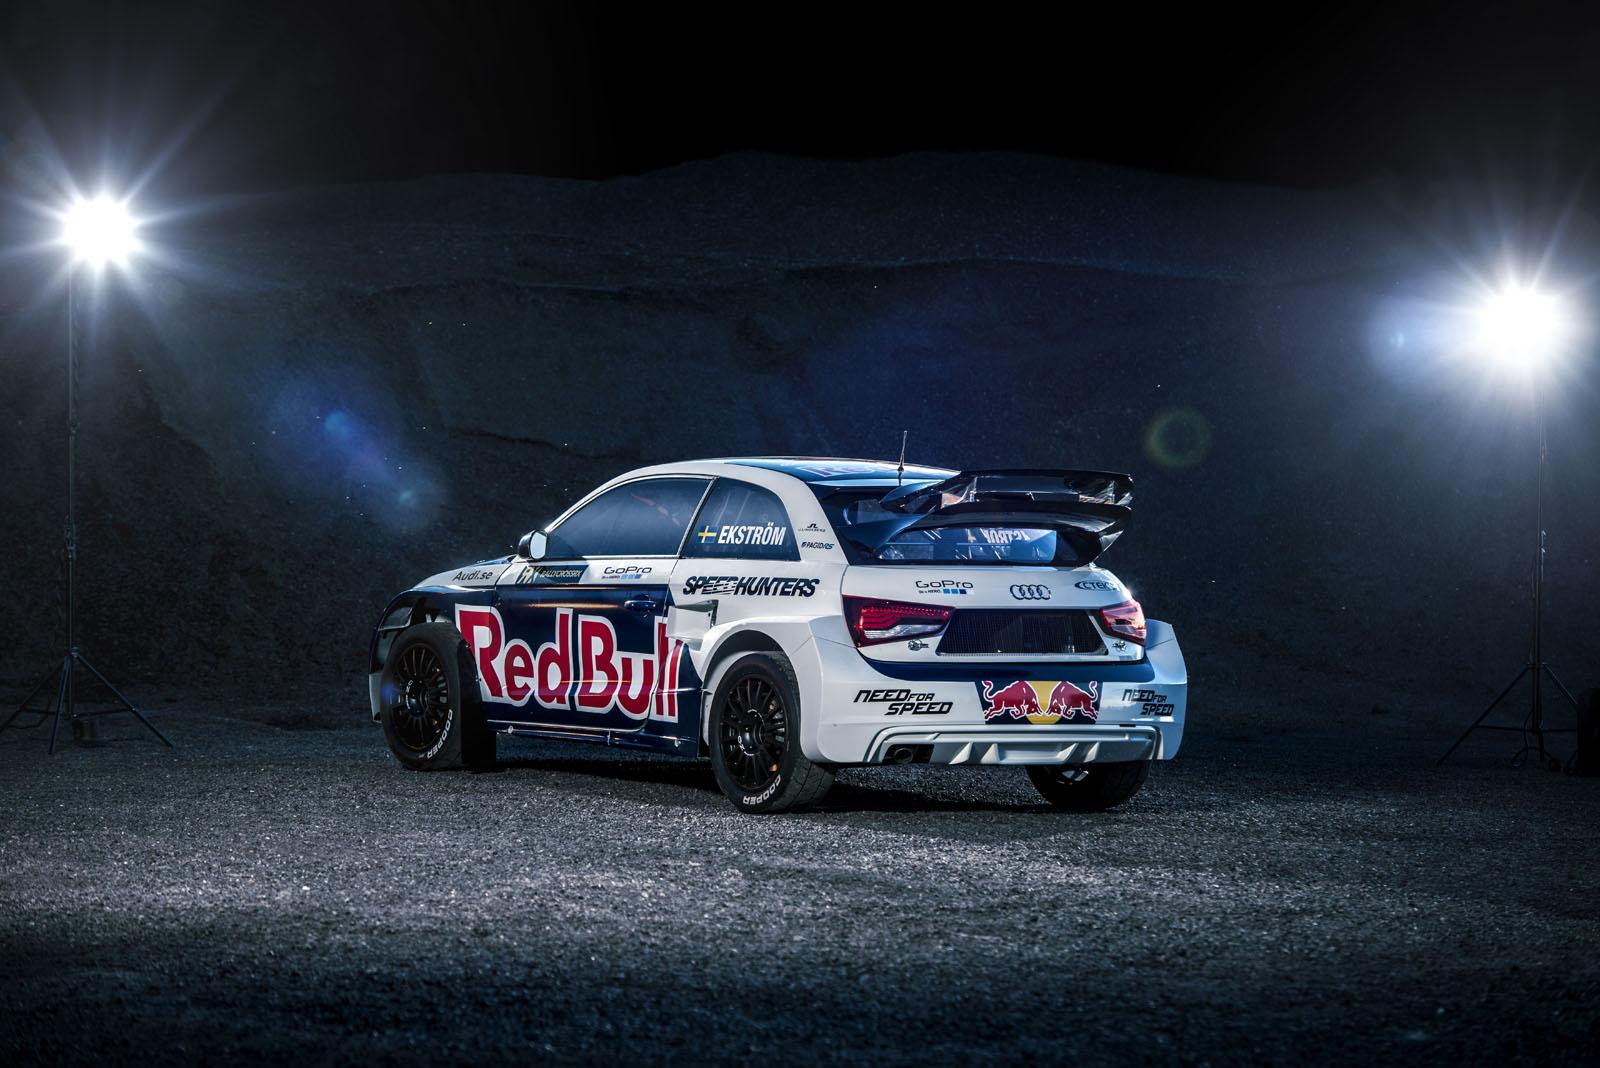 2016 Audi Q5 >> Audi S1 Ready to Rallycross in Red Bull Livery - autoevolution